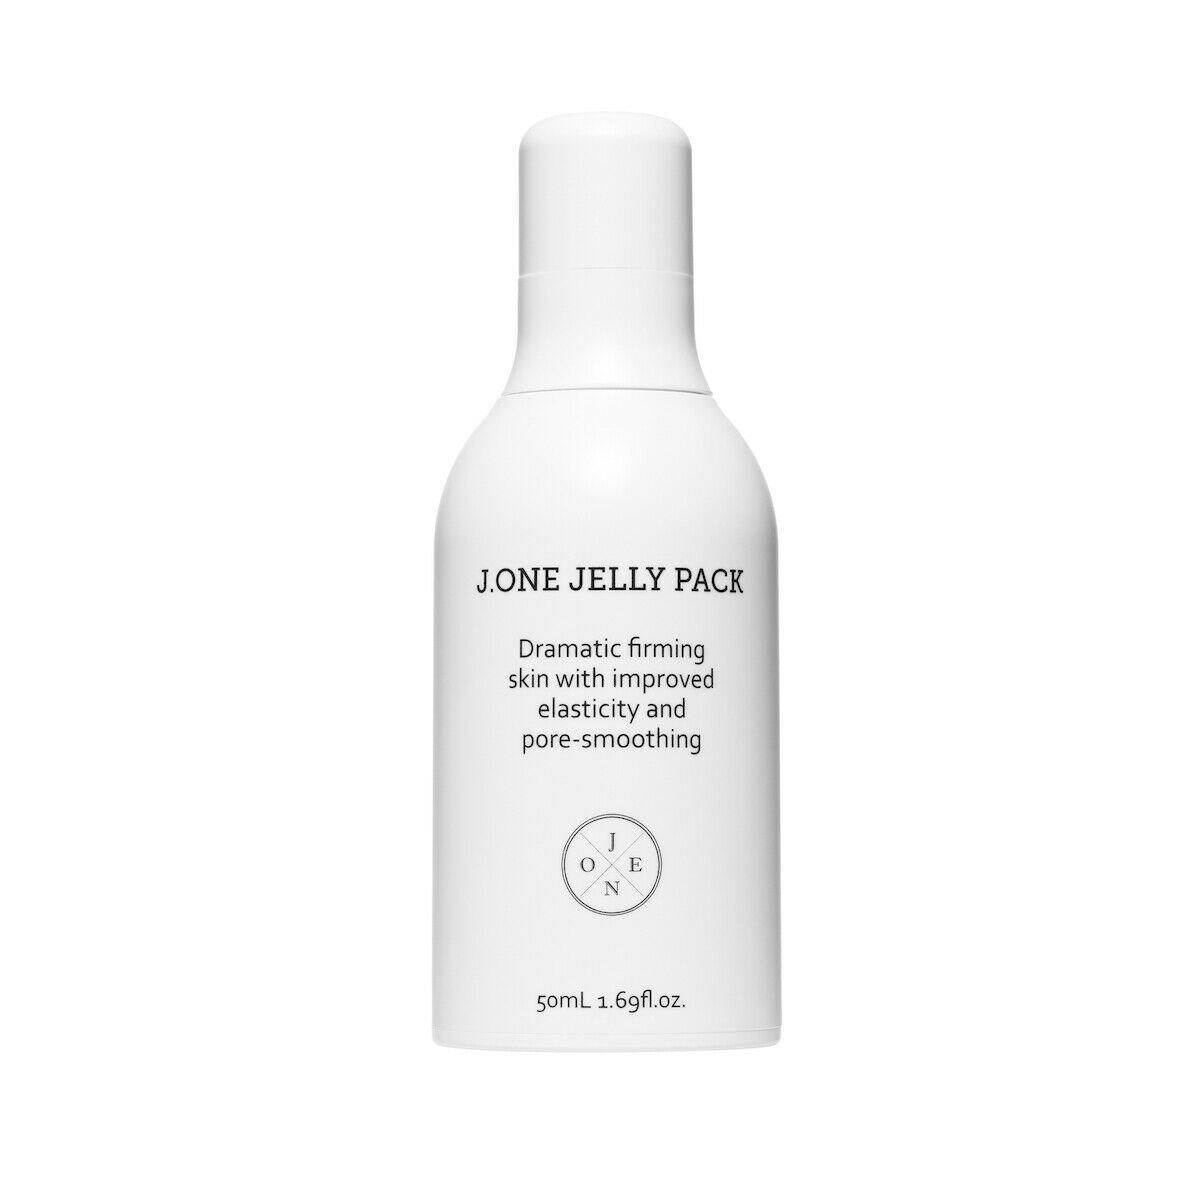 J.One Jelly Pack For Dramatic Firming Skin Primer